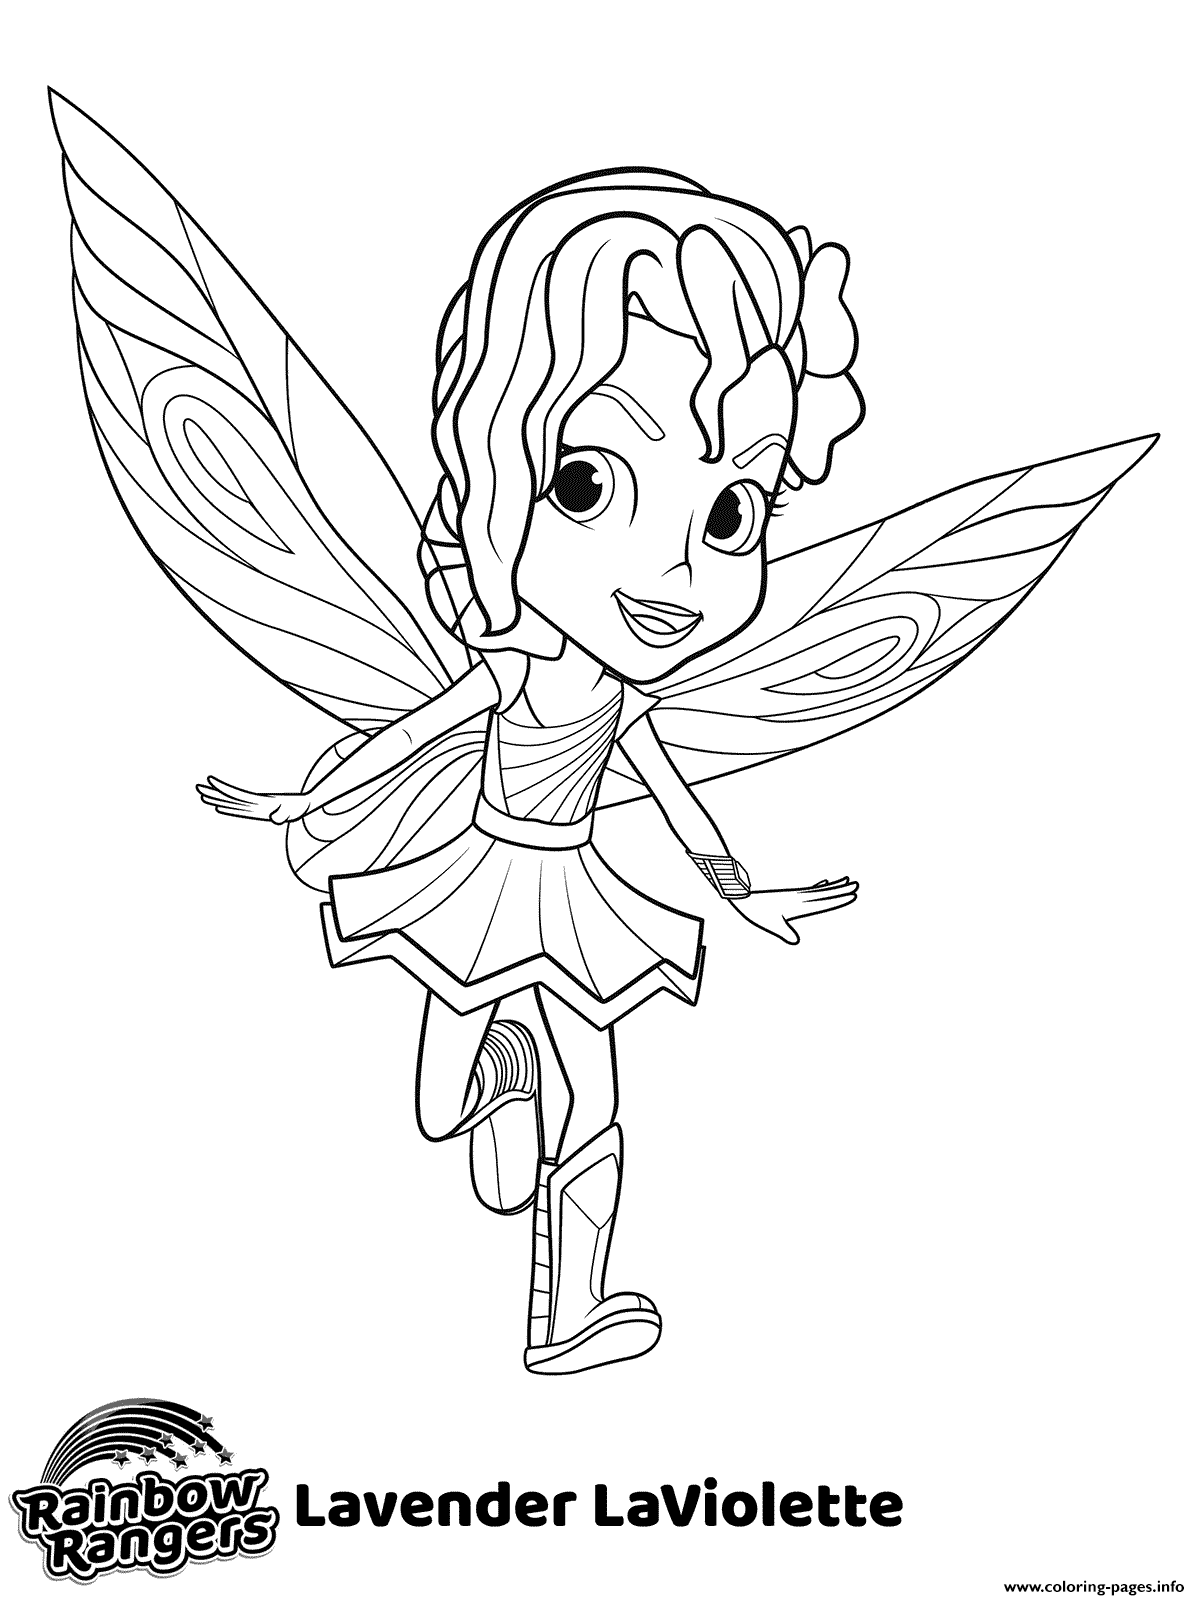 Little Fairy Rainbow Rangers Coloring Pages Printable